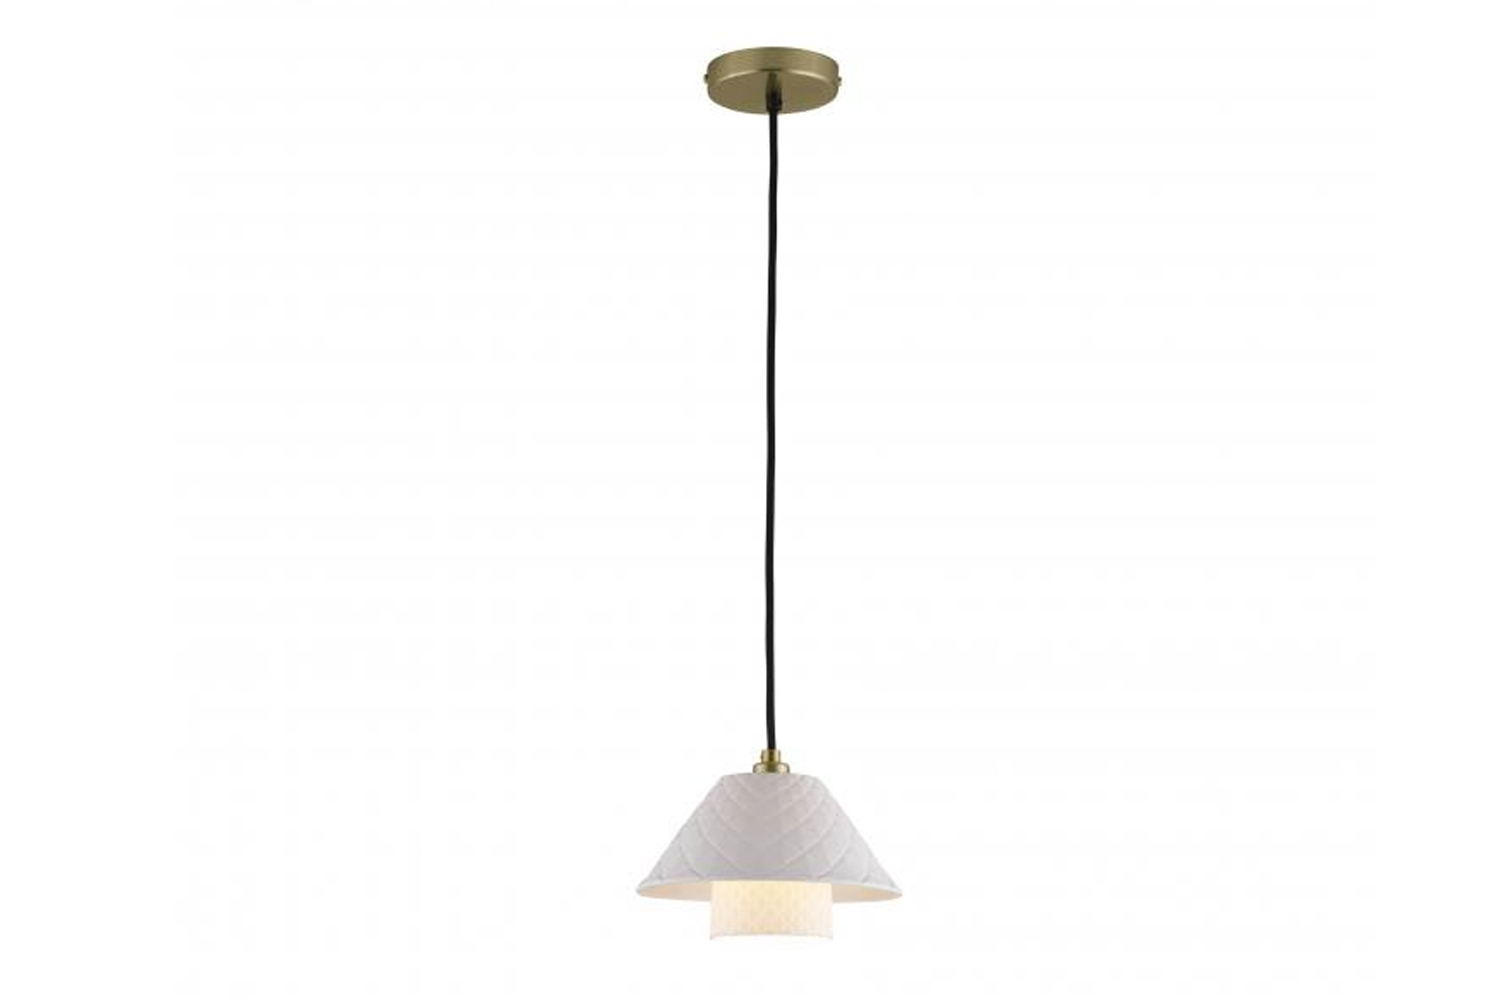 British lighting manufacturer Original BTC expanded its Oxford collection.